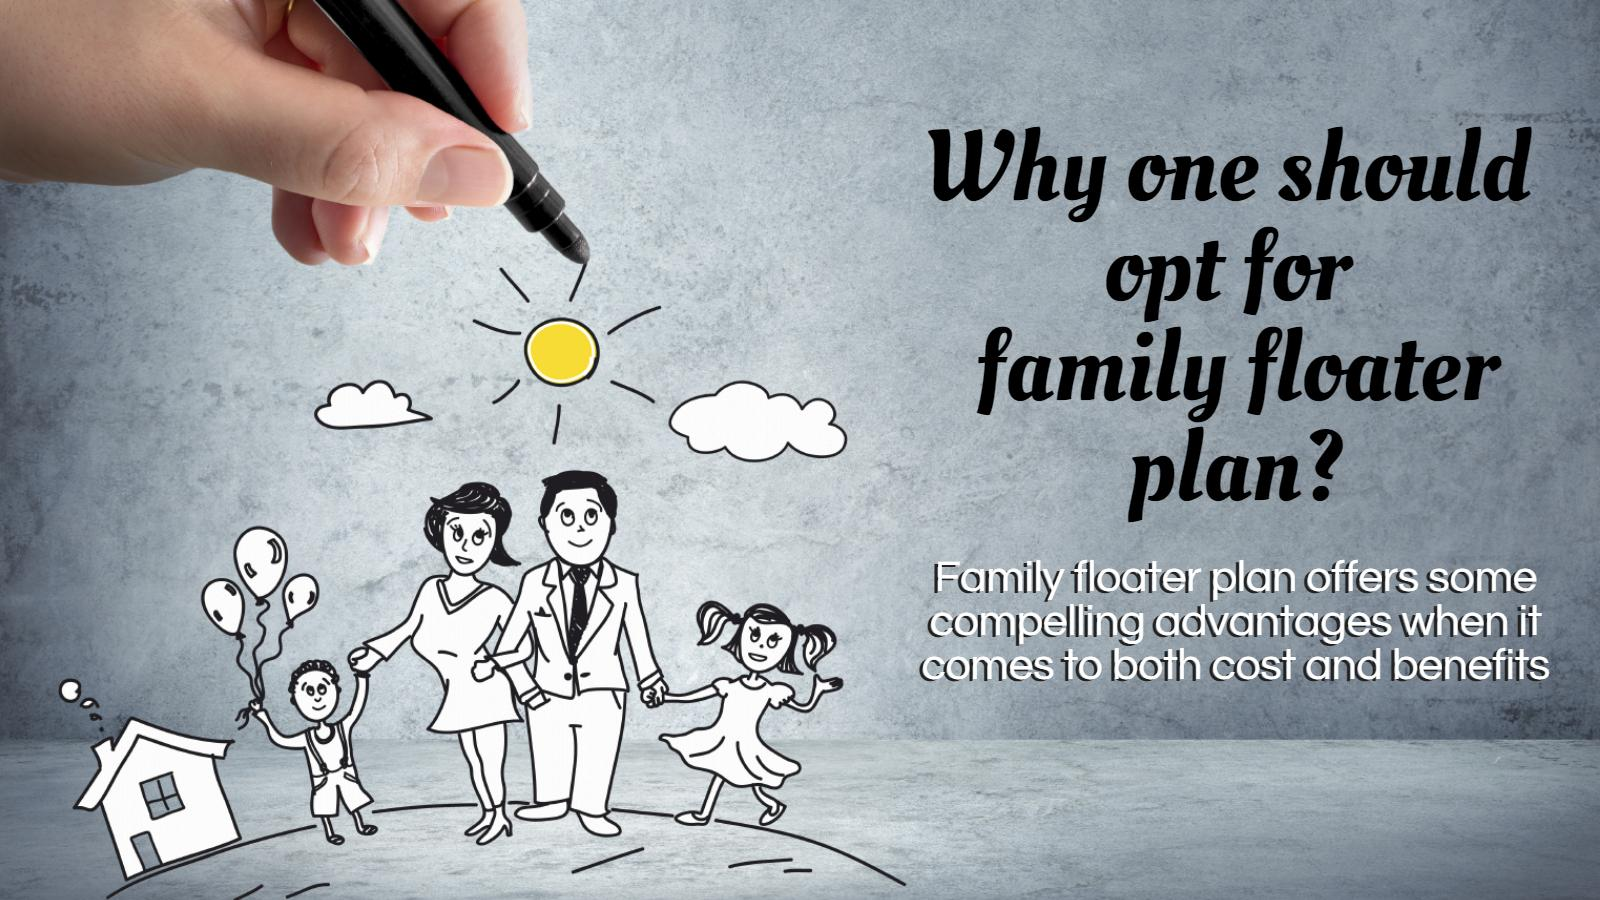 Why should you opt for a family floater health plan?